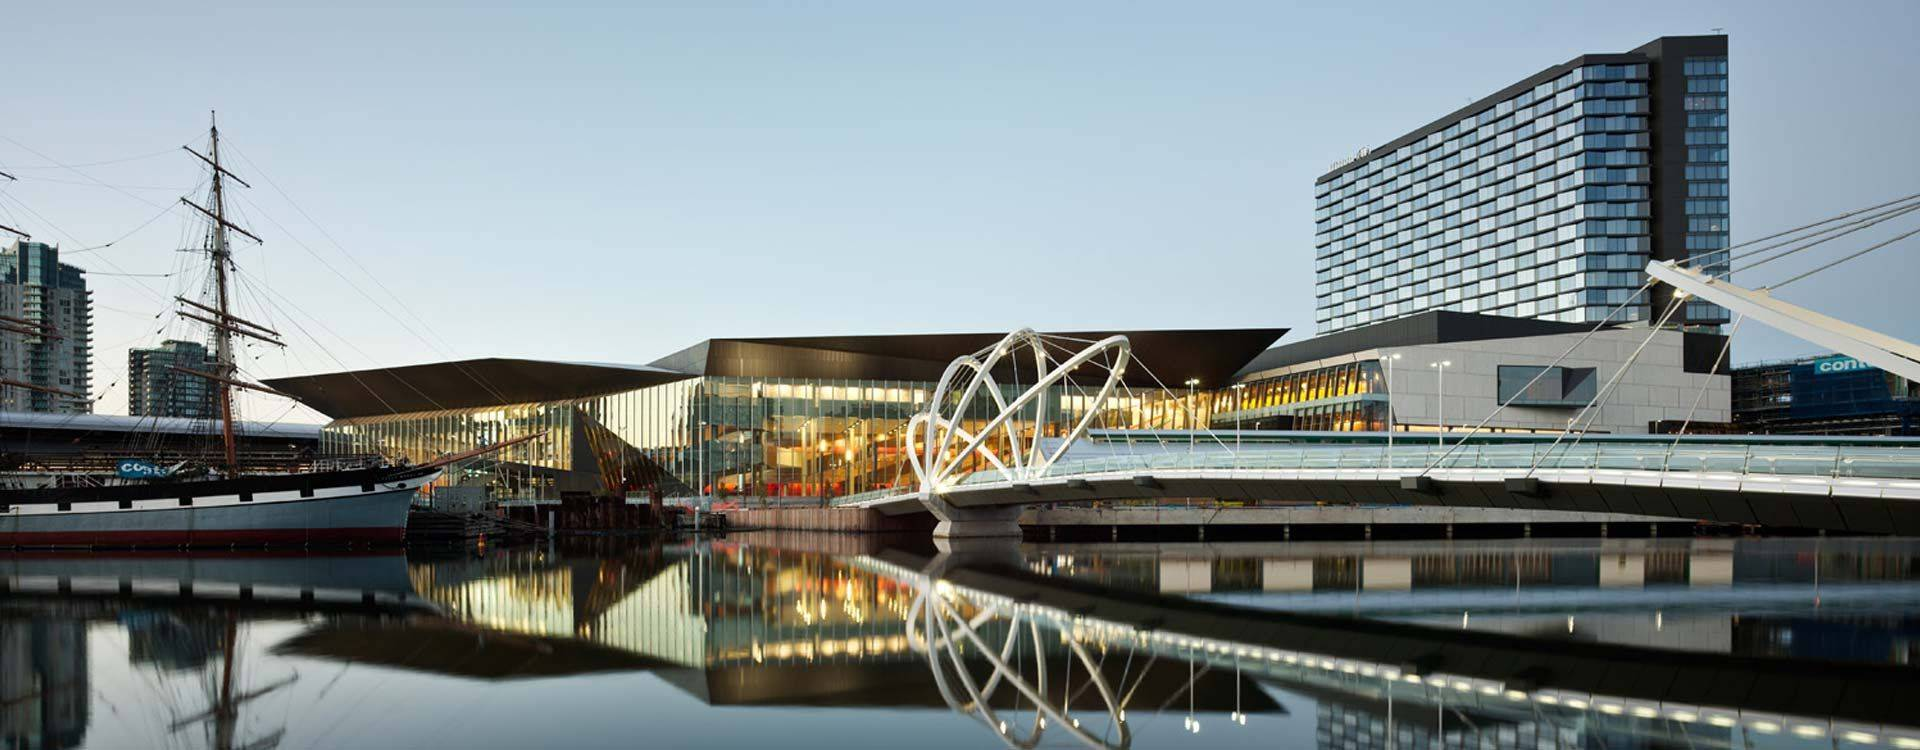 Melbourne Convention and Exhibition Centre - February 1-9, 2020